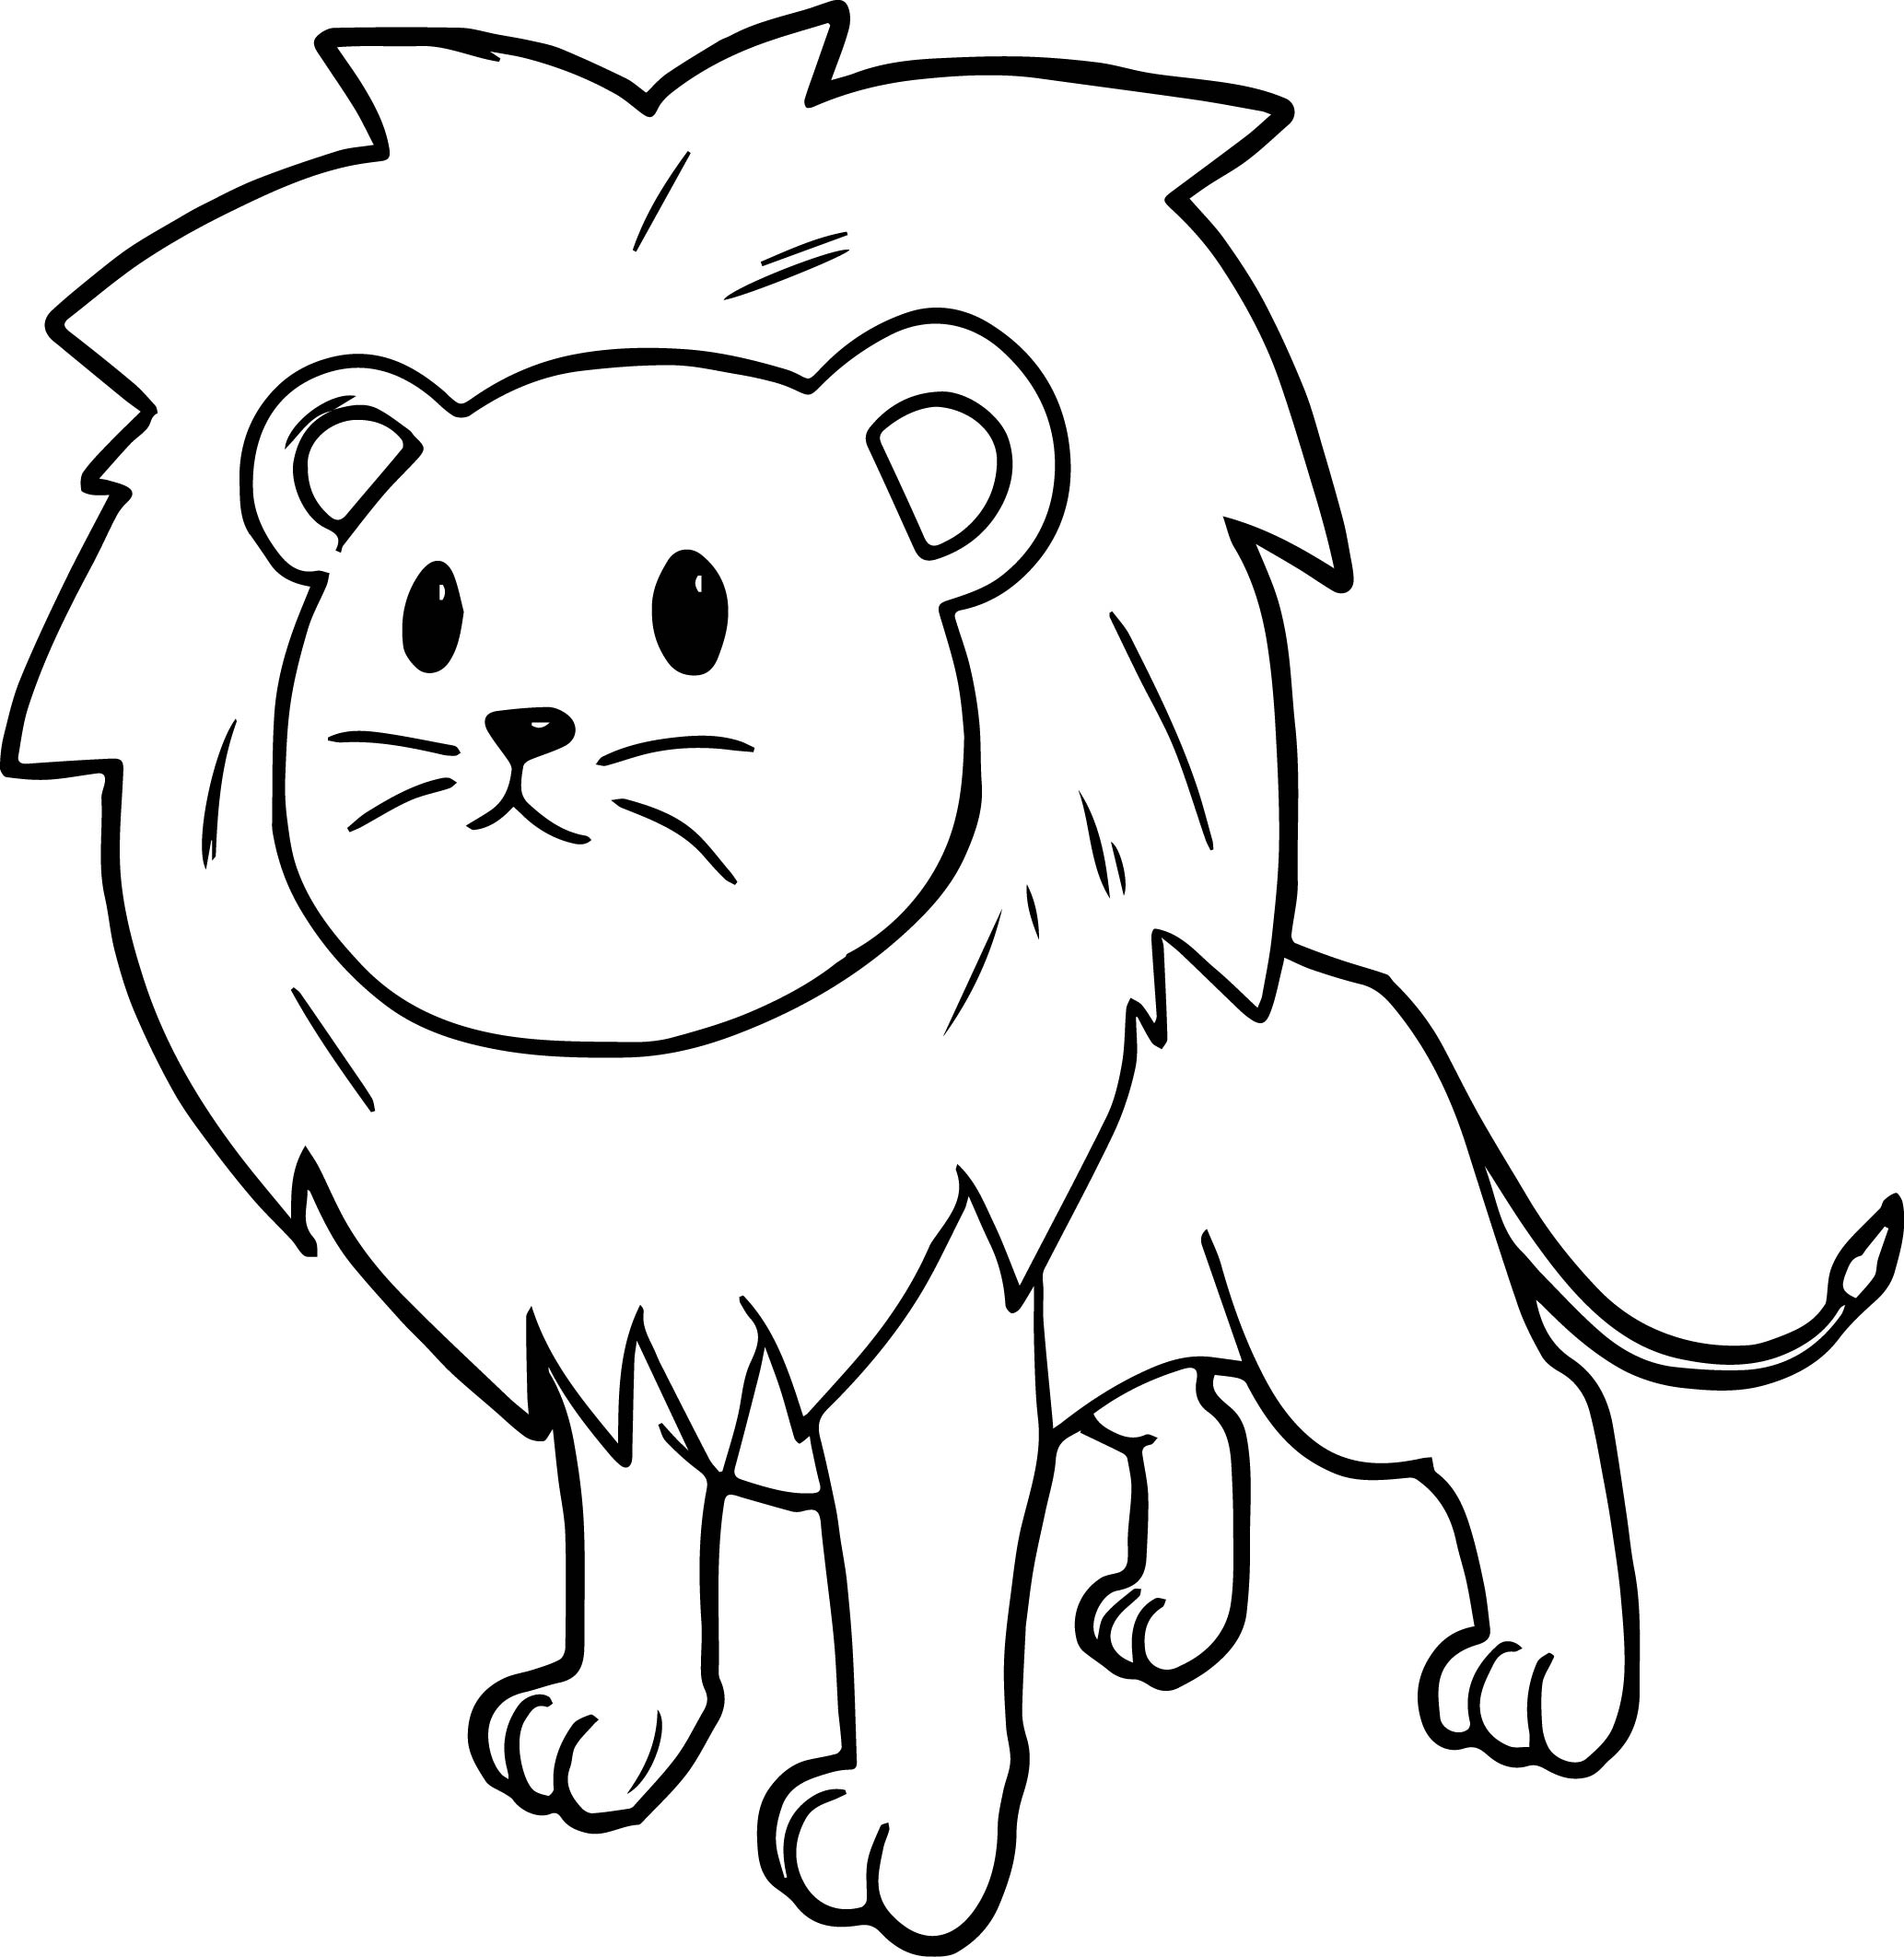 lion coloring pages - cute cartoon comic lion coloring page